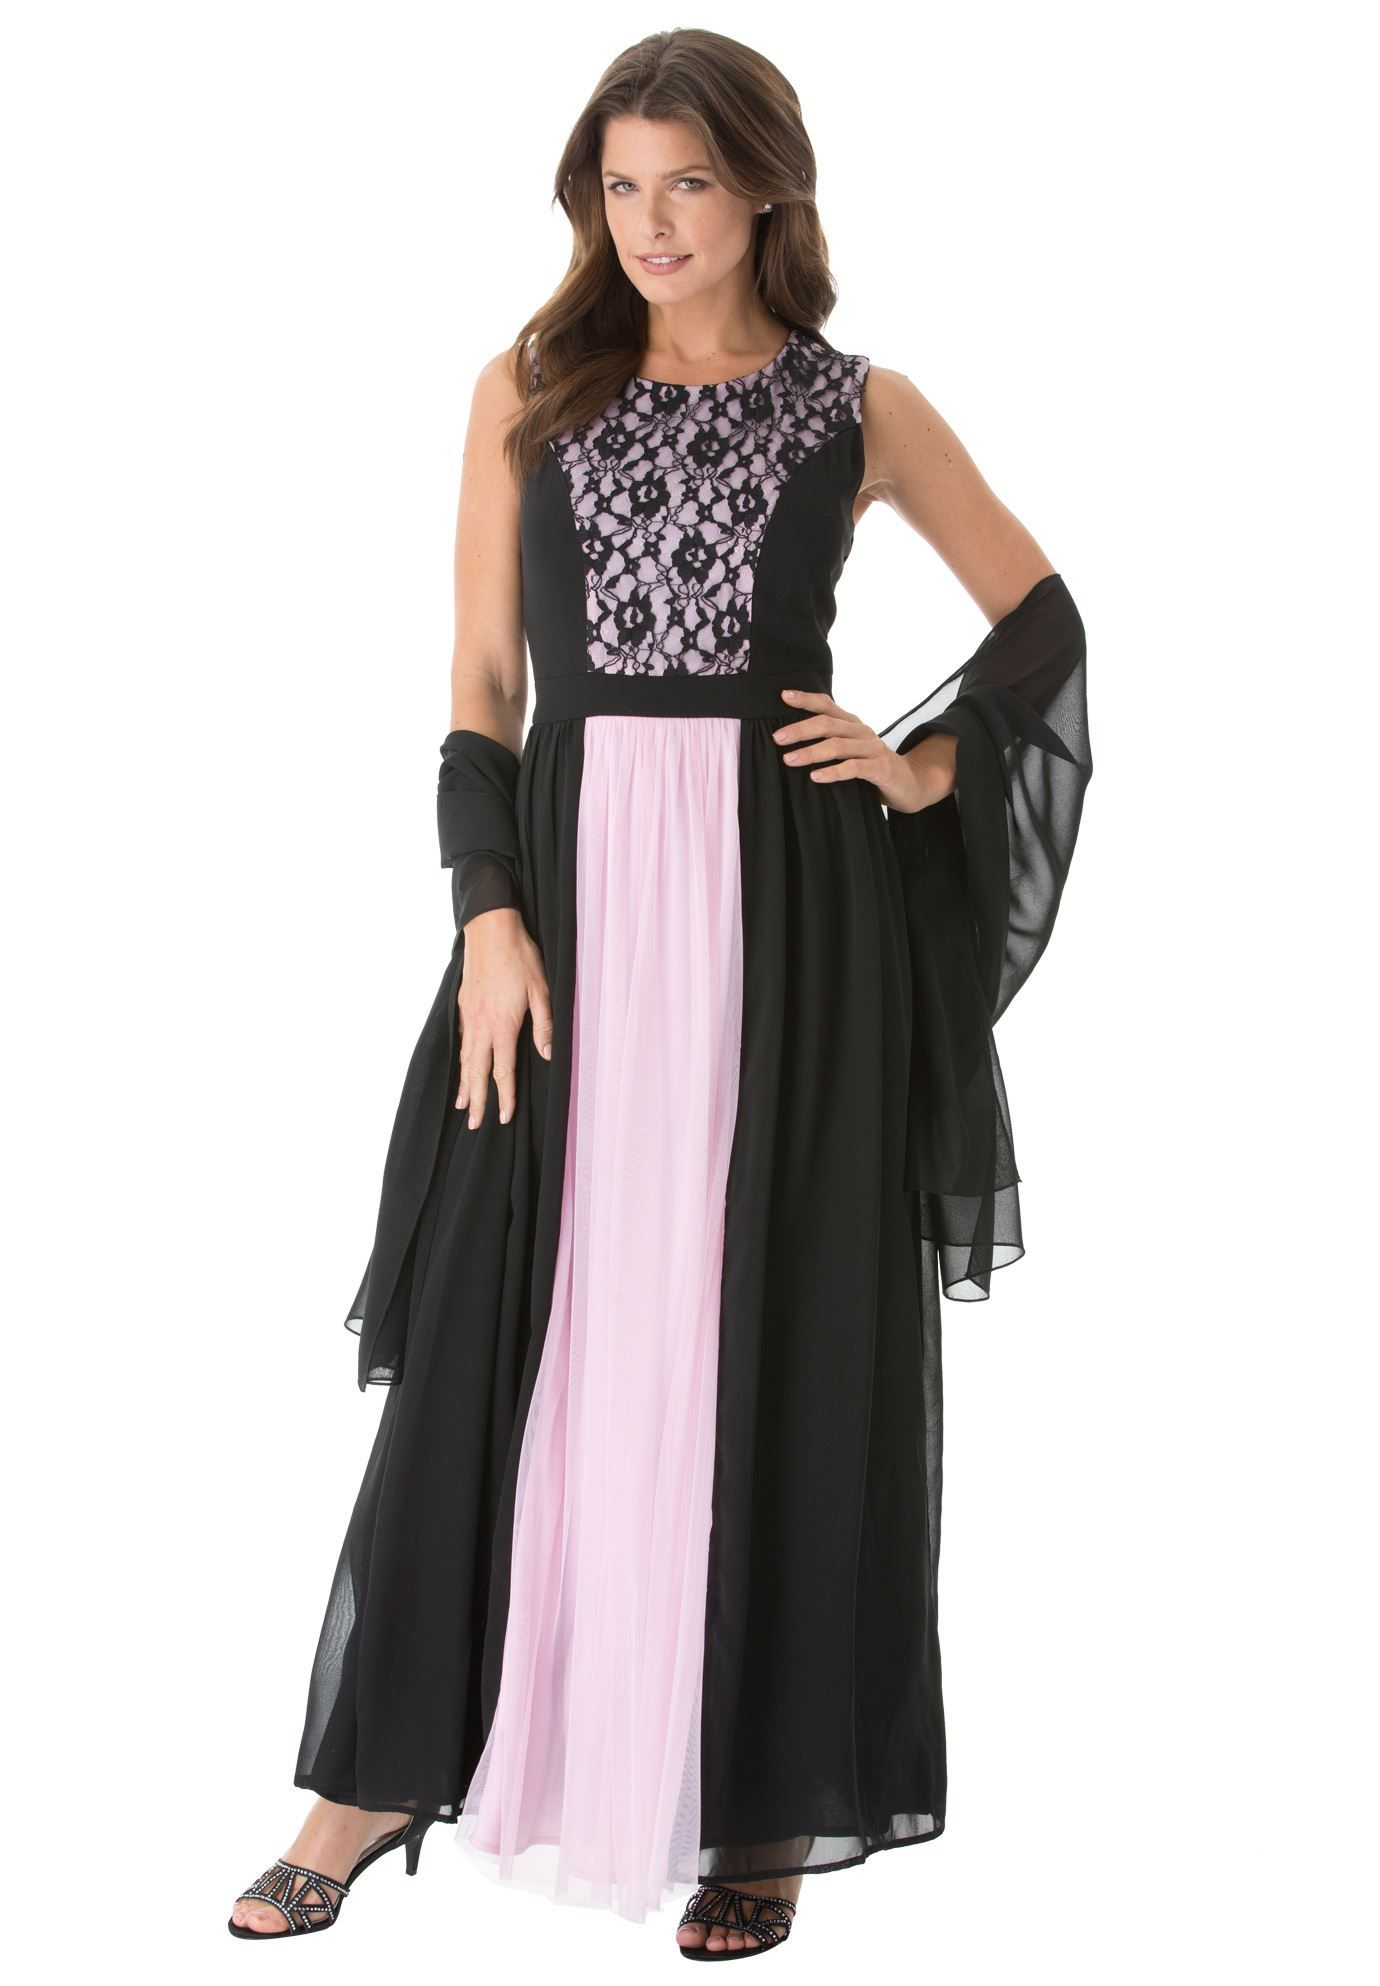 Colorblock Lace Dress Plus Size Special Occasion Shop Fullbeauty